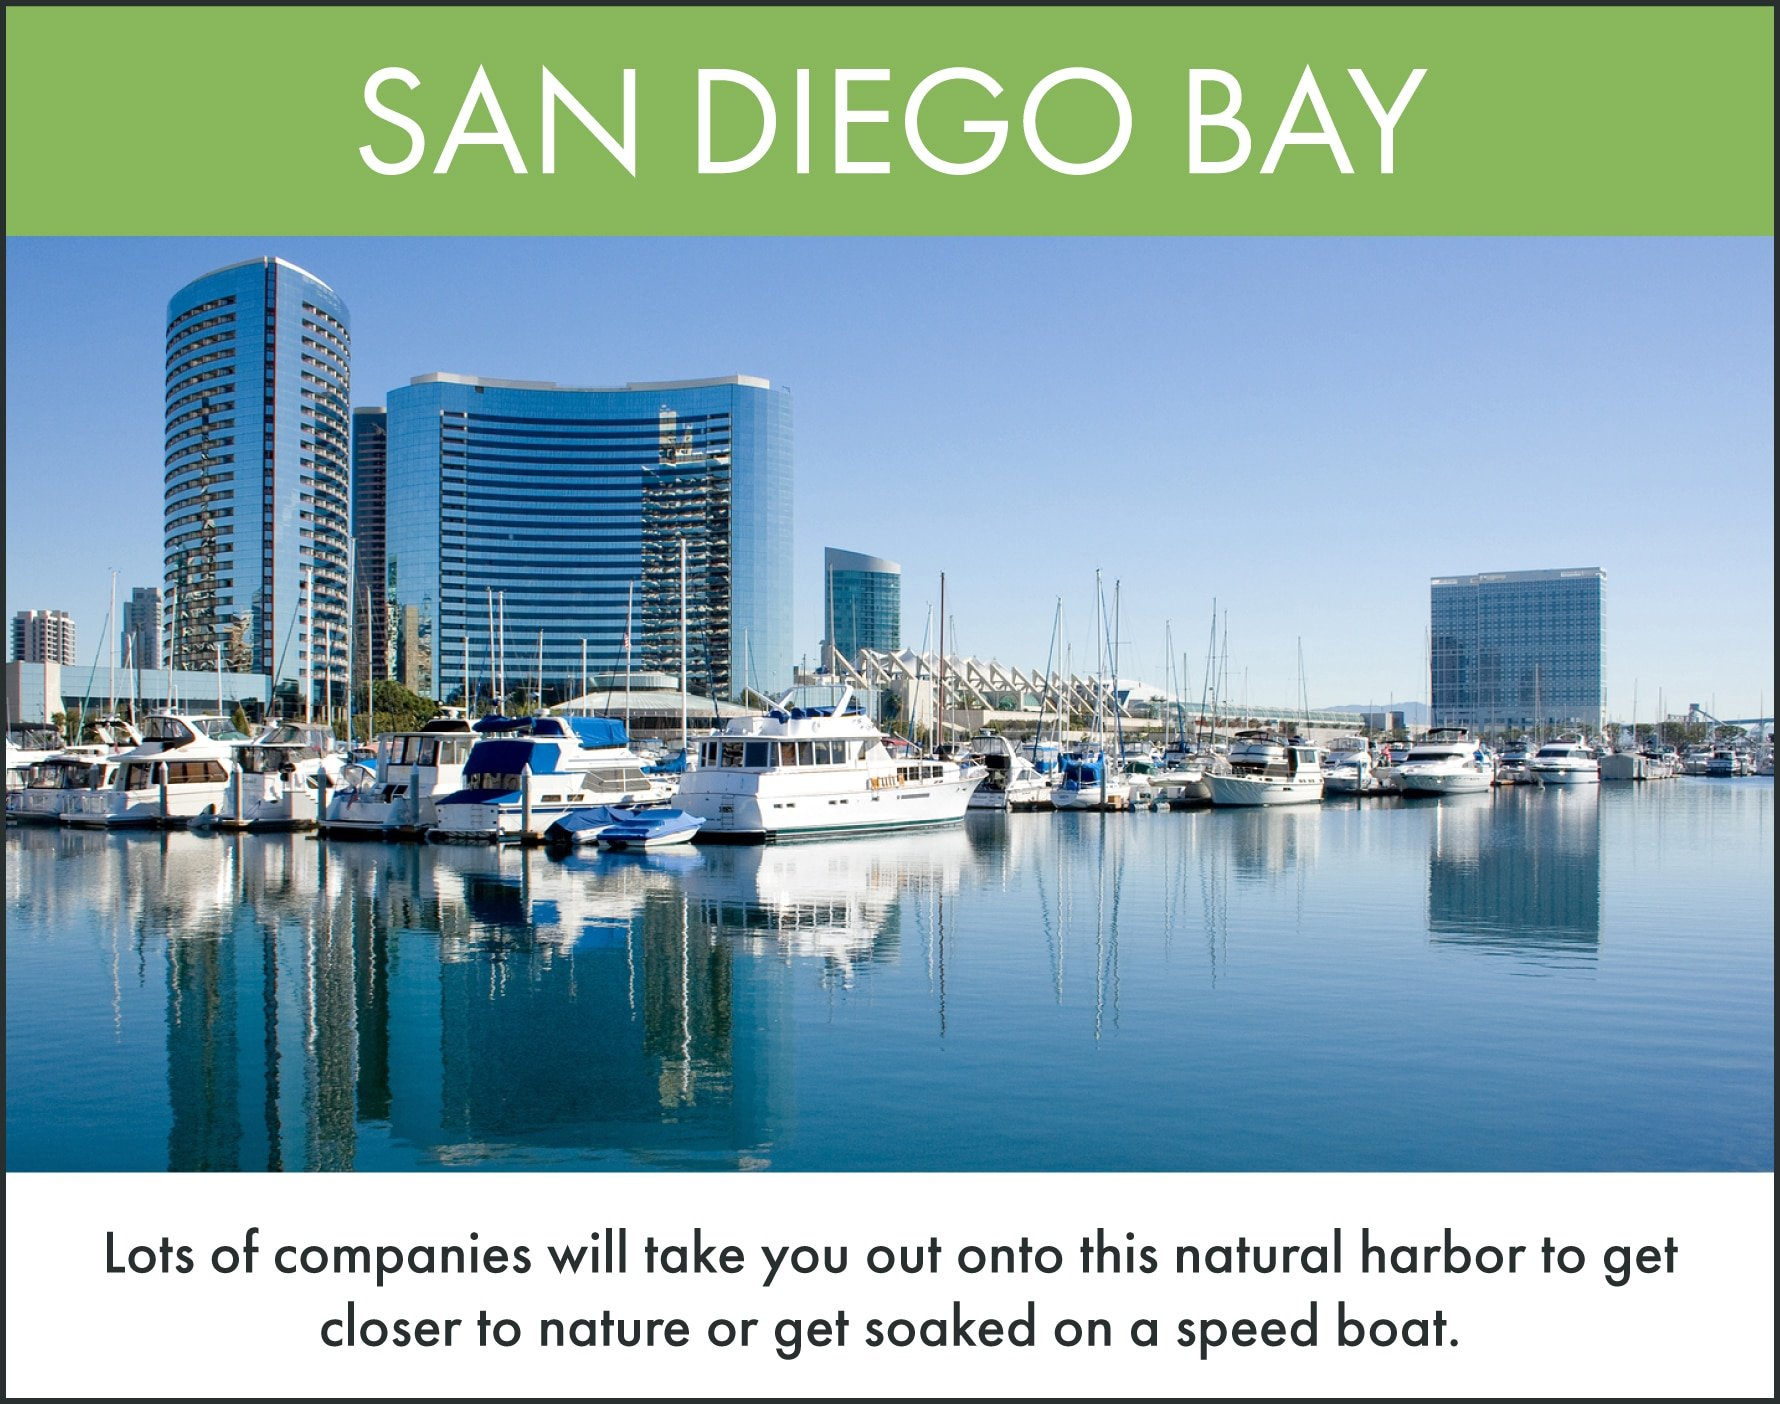 Top things to do in San Diego: Bay sightseeing tours